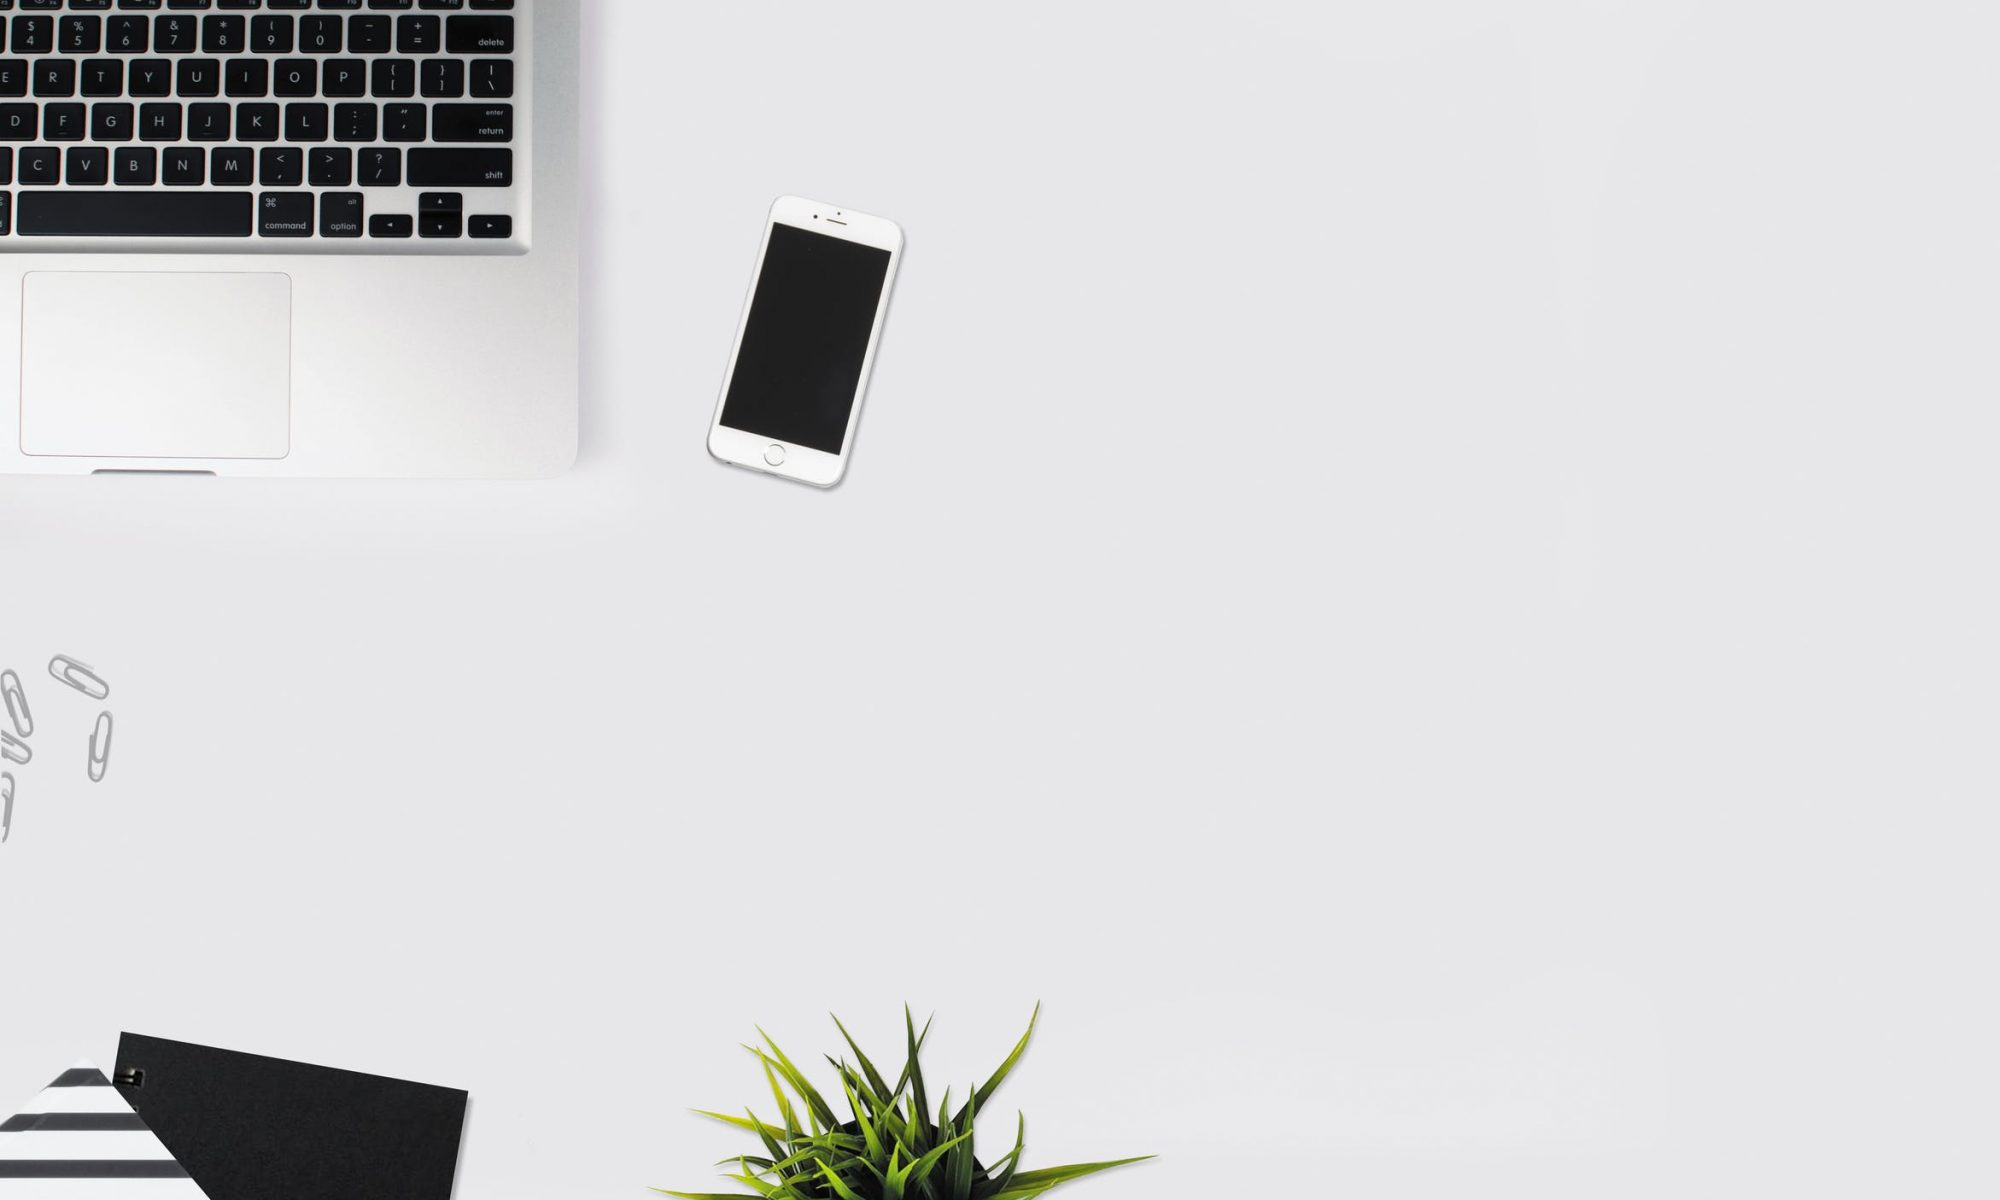 A stock image of laptops and a white iPhone.